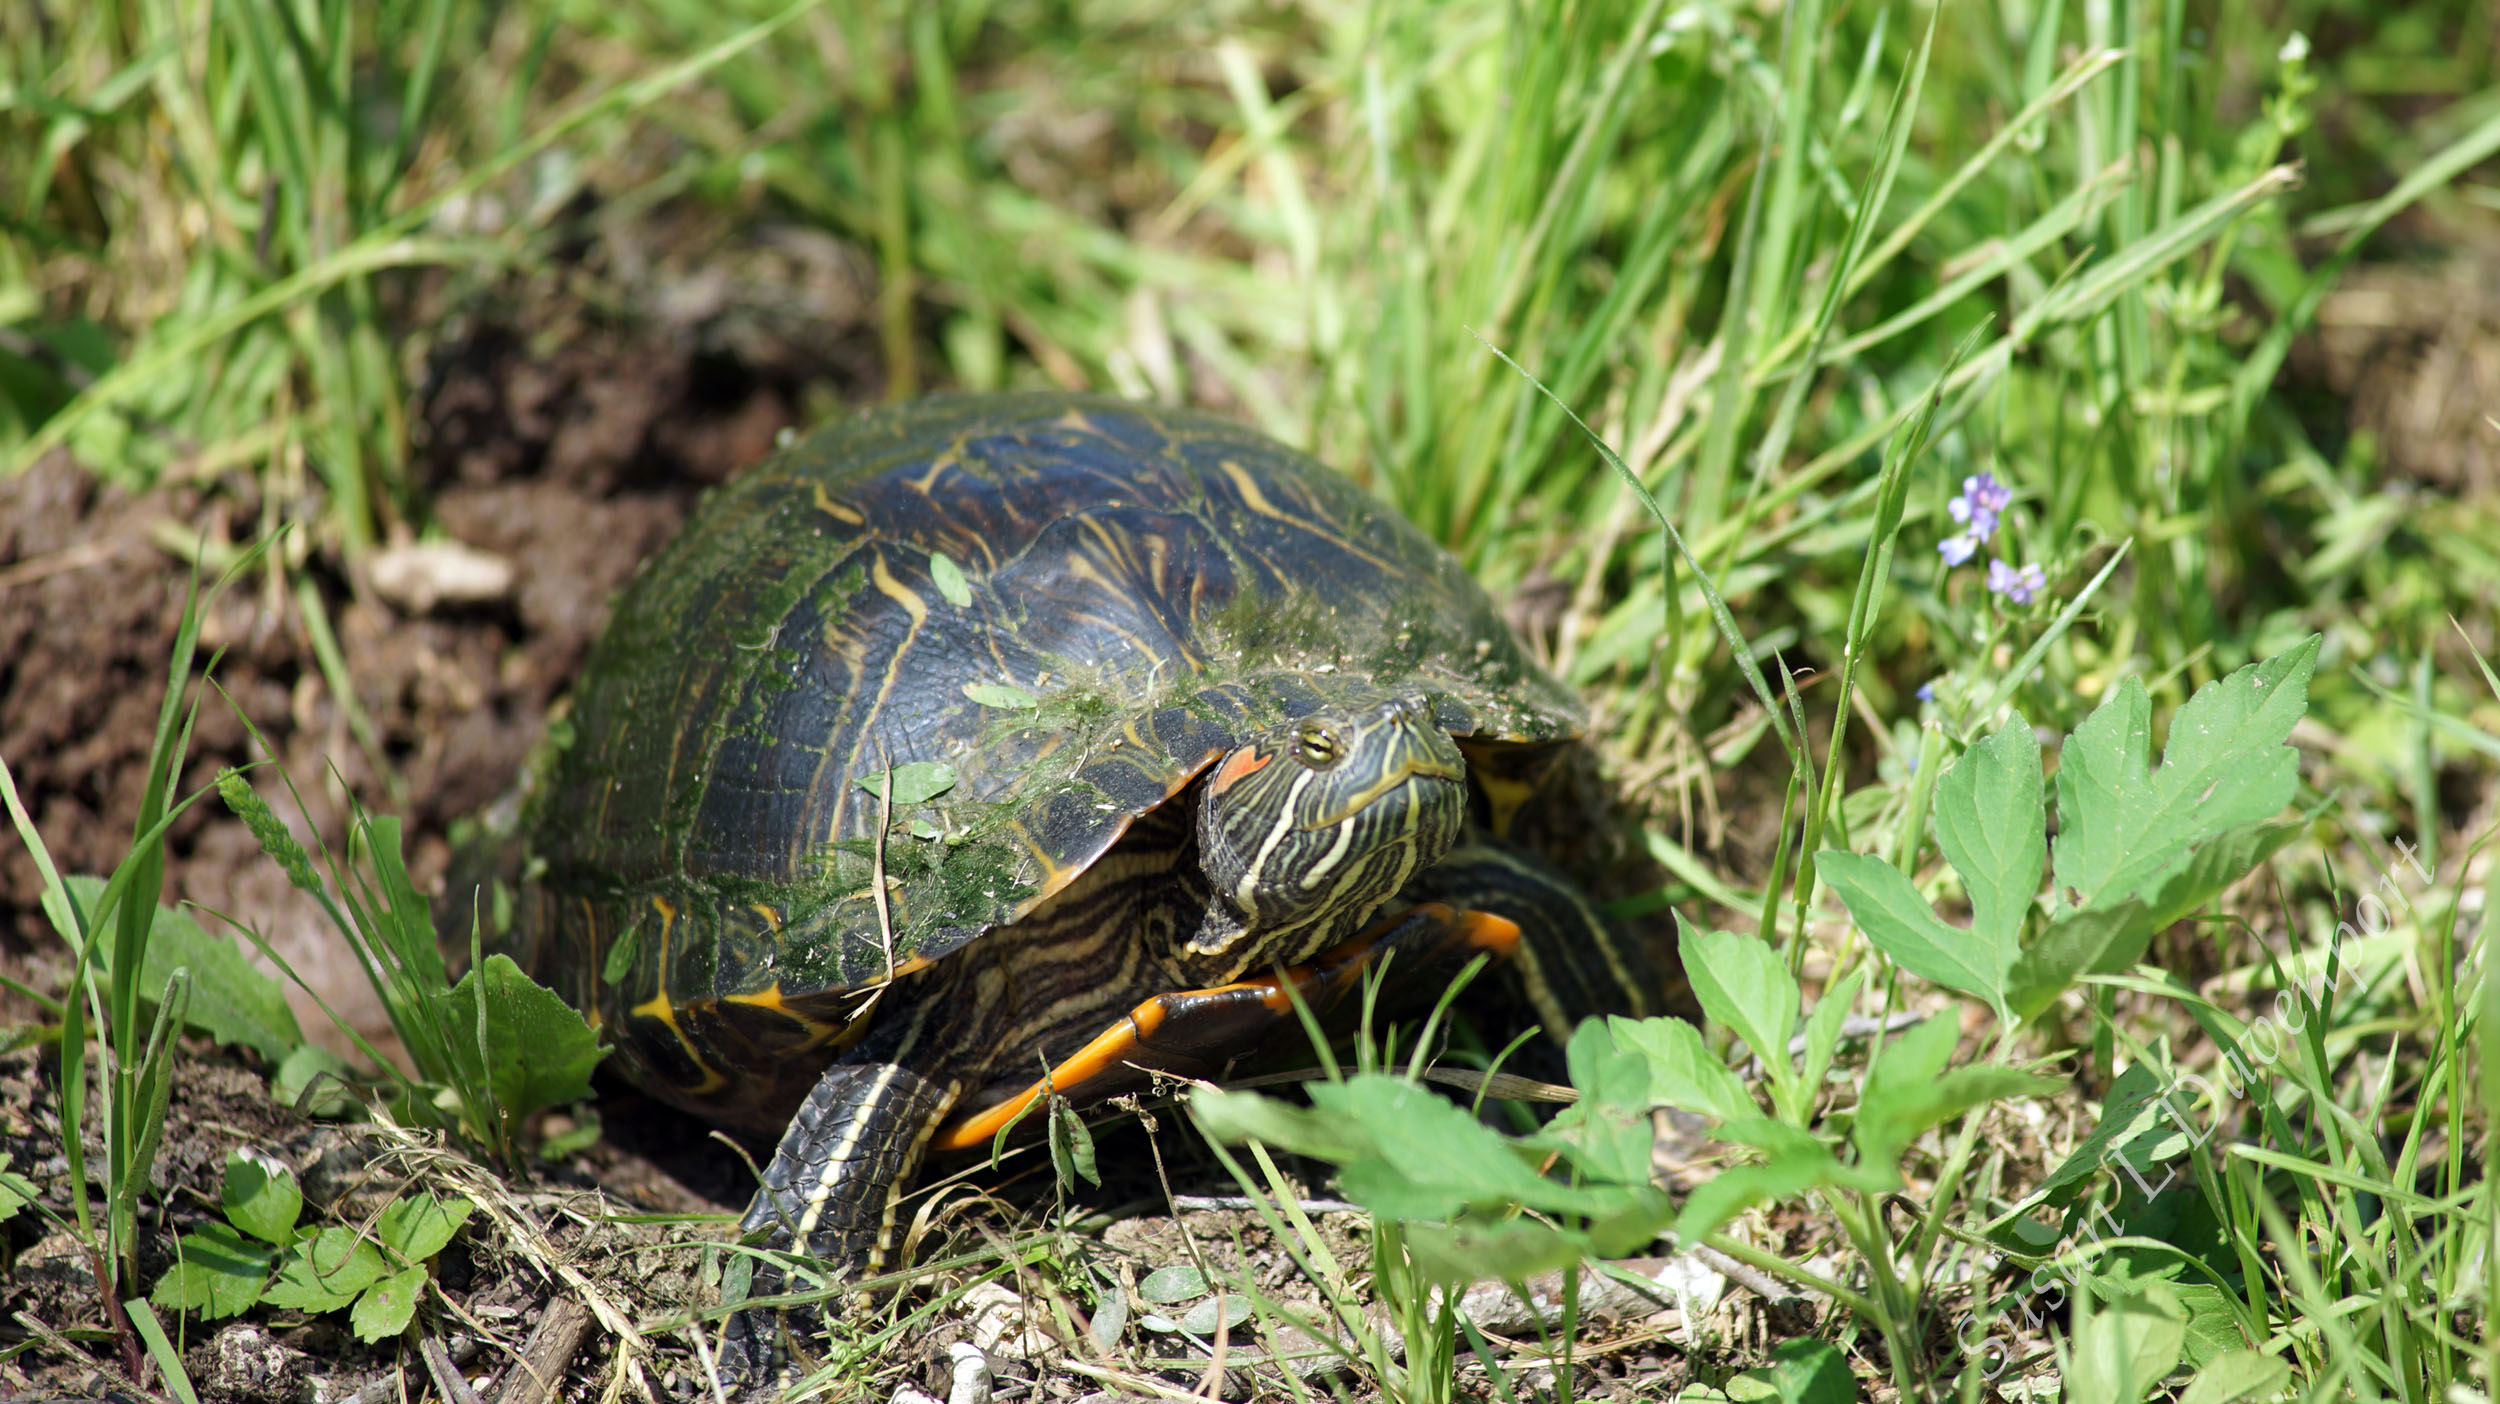 Red-Eared Slider Turtle  -  Photo by Susan L. Davenport